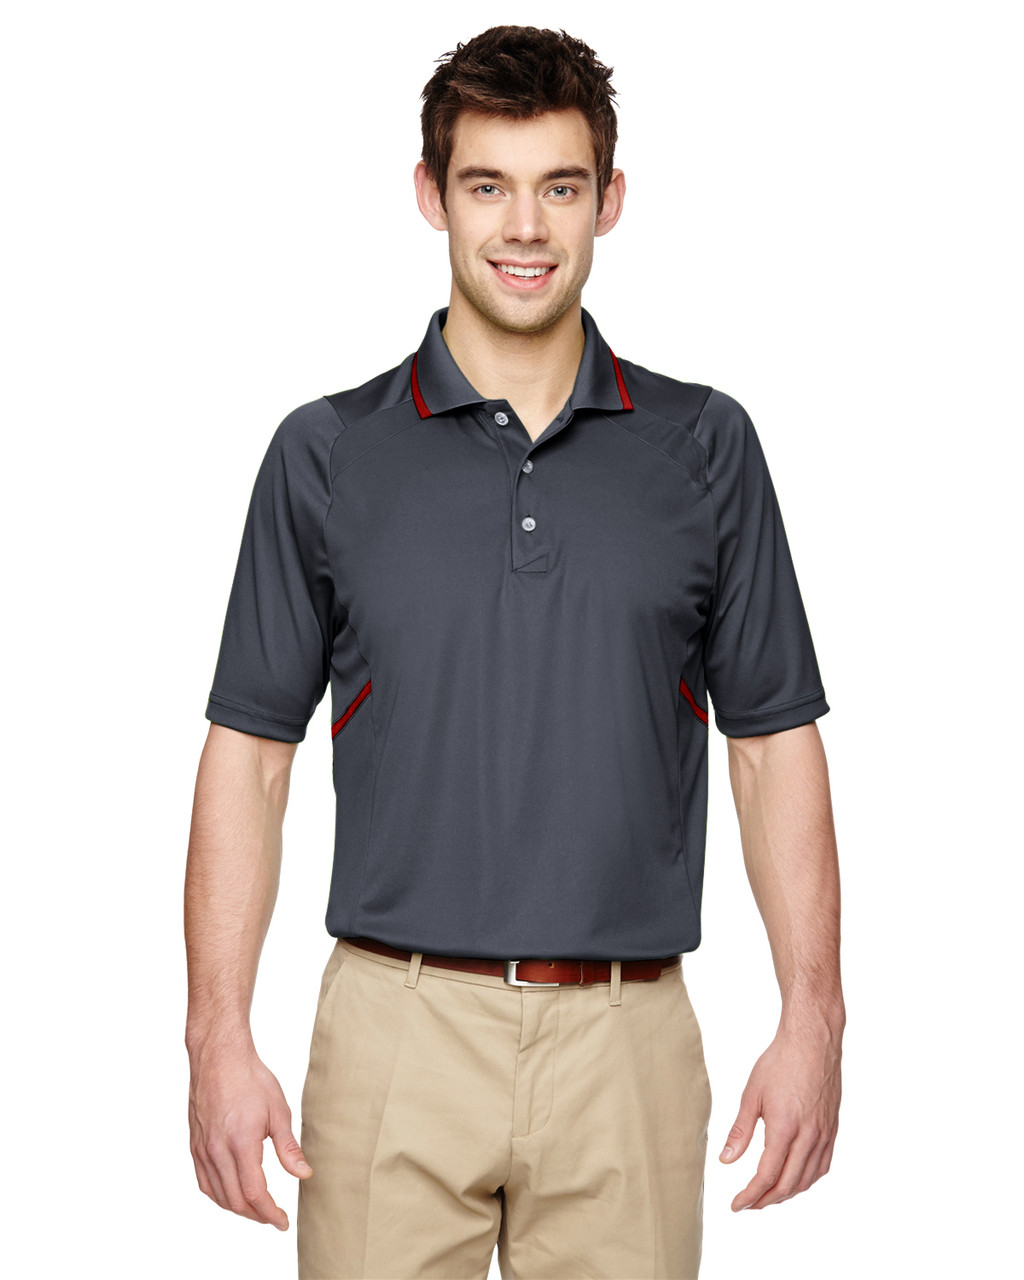 Carbon - Extreme Eperformance Propel Interlock Polo Shirt with Contrast Tape